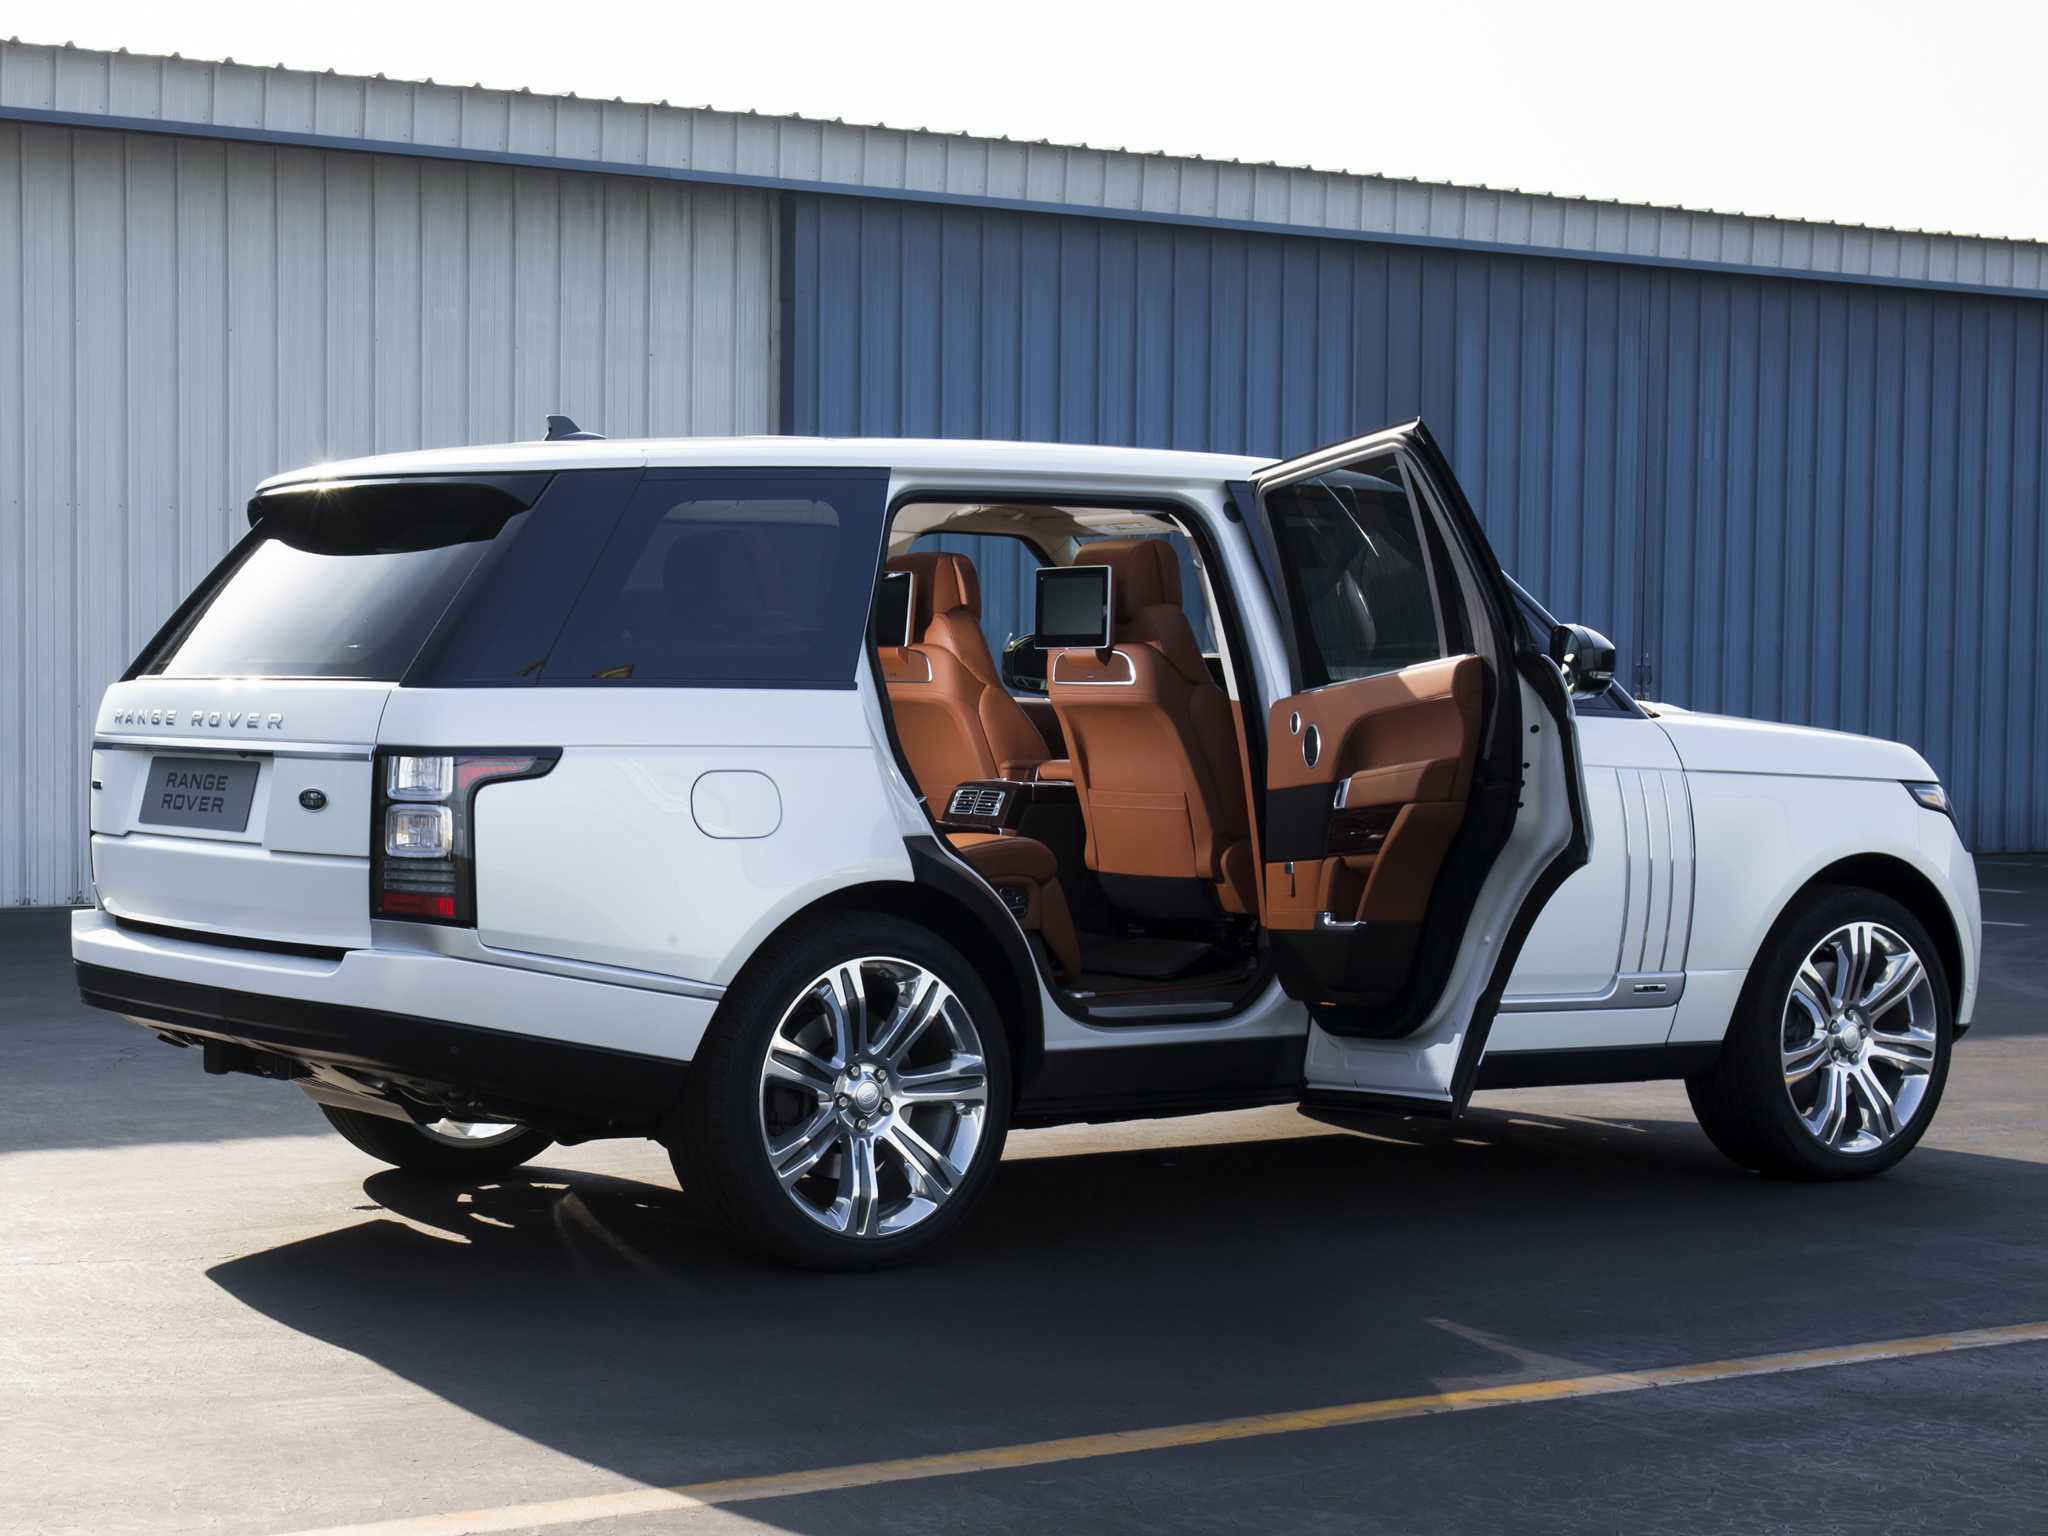 2014 range rover autobiography black lwb l405 suv luxury. Black Bedroom Furniture Sets. Home Design Ideas